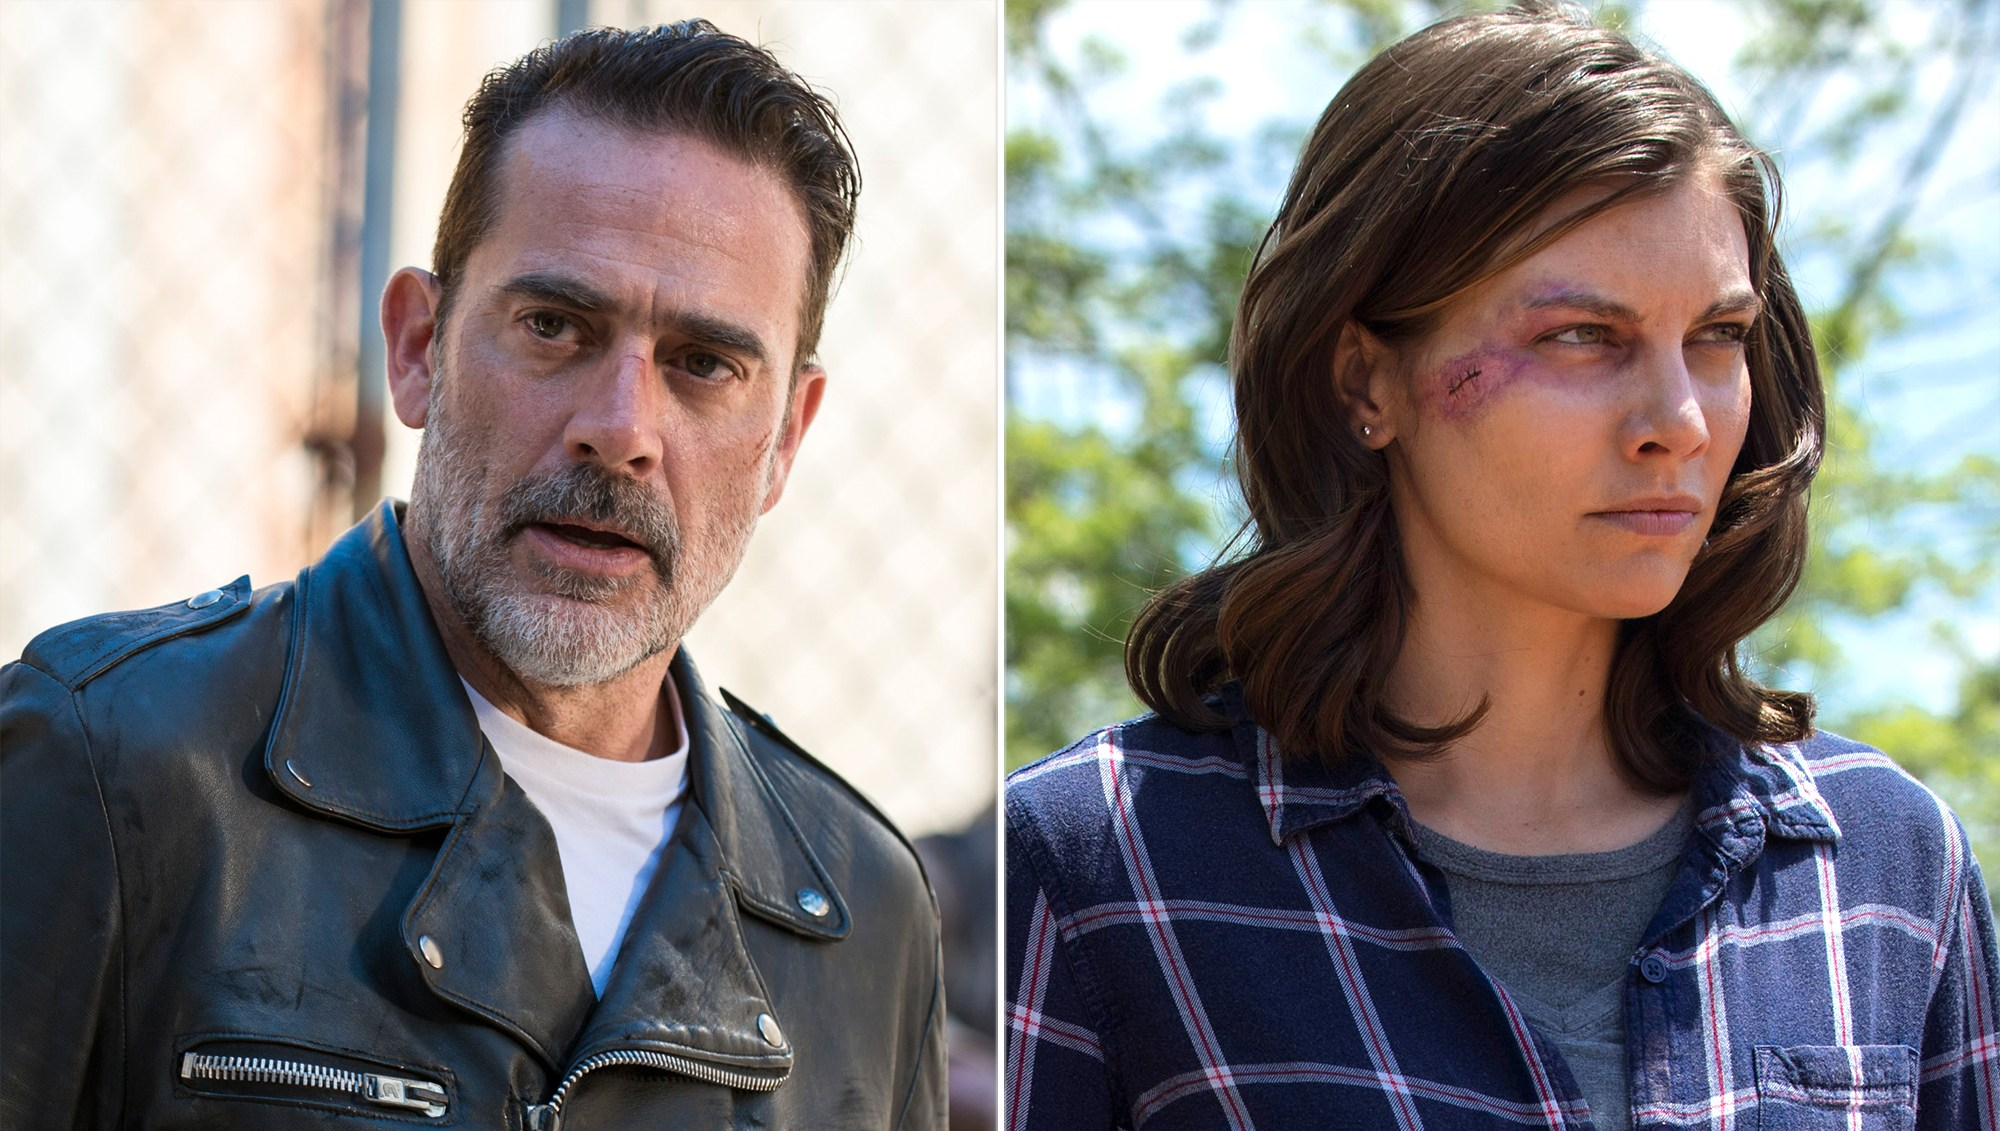 Negan and Maggie Rhee